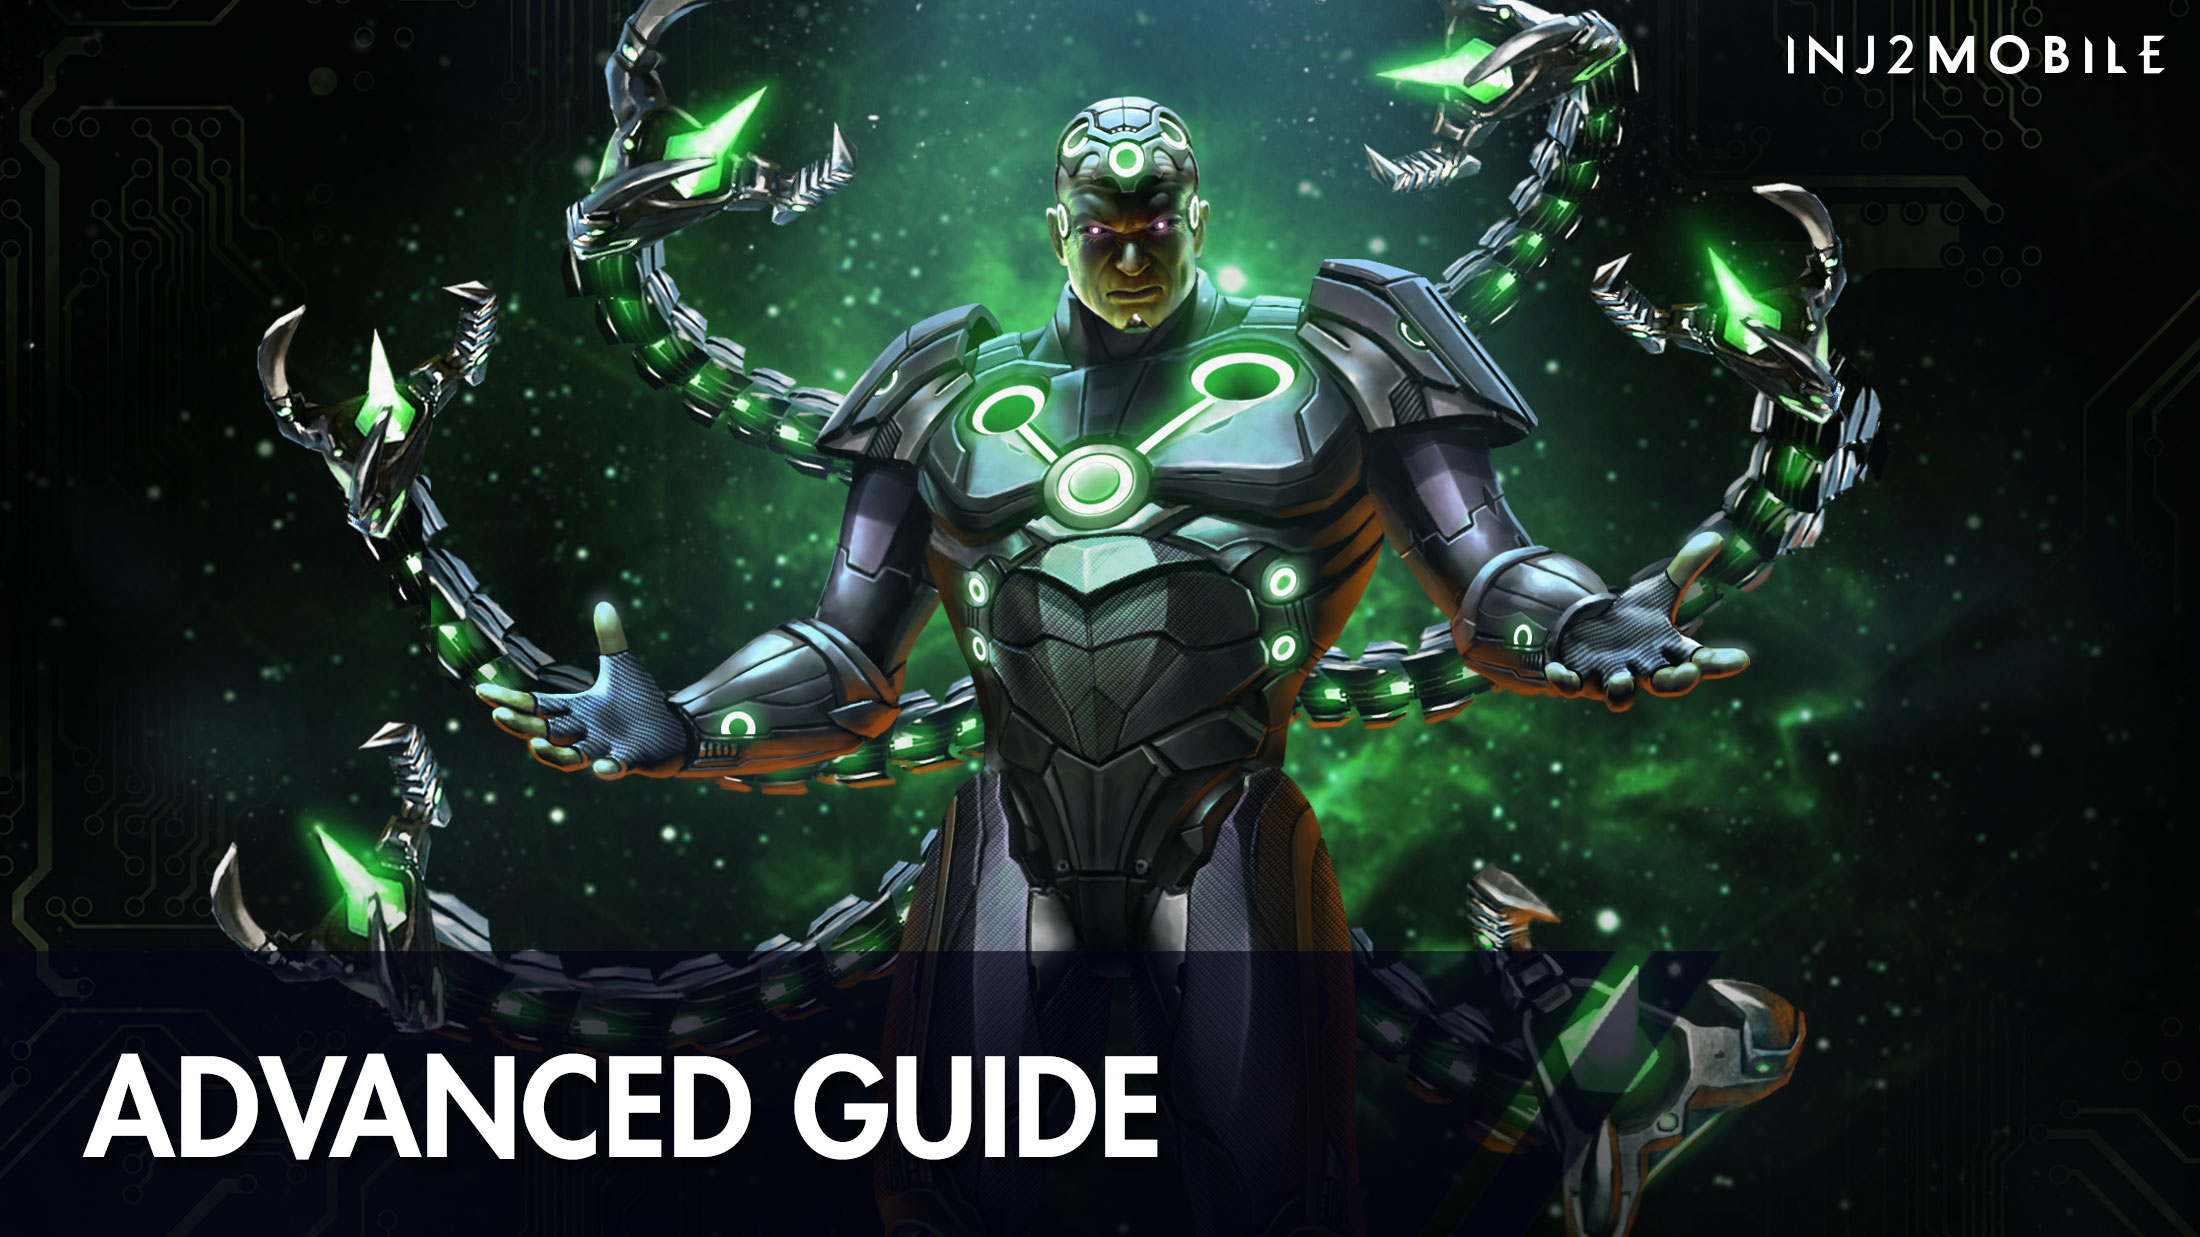 Injustice 2 Mobile Advanced Guide – DC Games